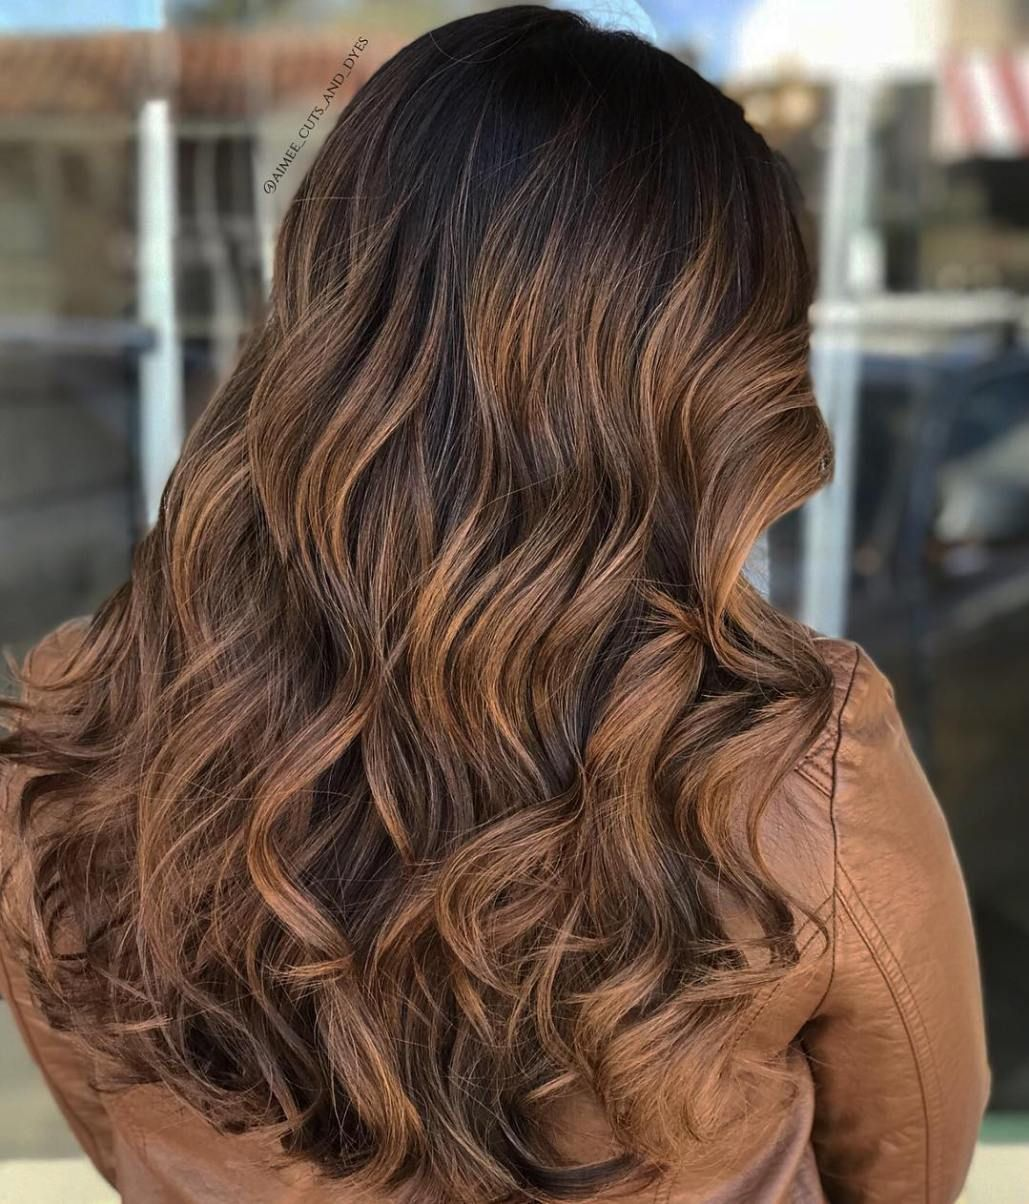 60 Looks With Caramel Highlights On Brown And Dark Brown Hair Brunette Hair Color Brown Hair With Caramel Highlights Caramel Balayage